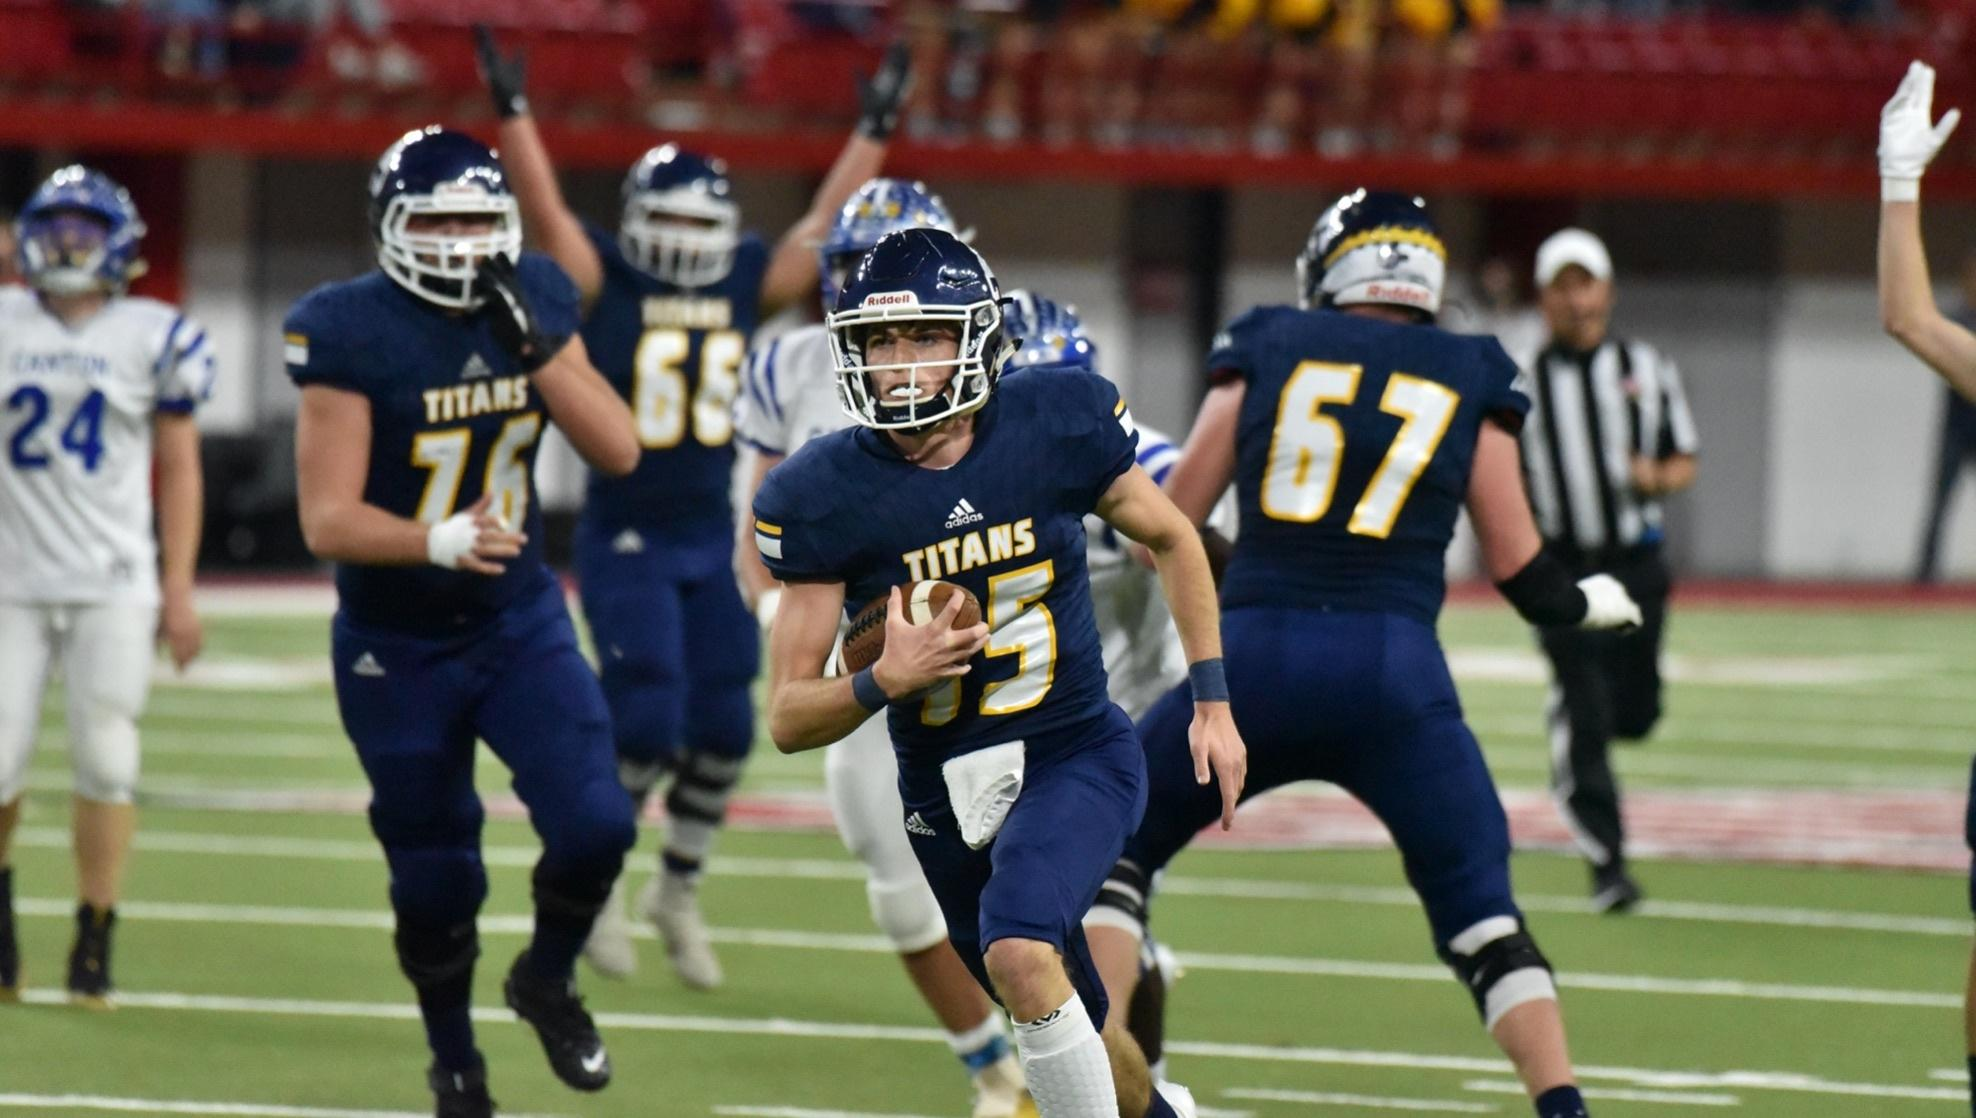 Tea Area Throttles Canton in 11A title game